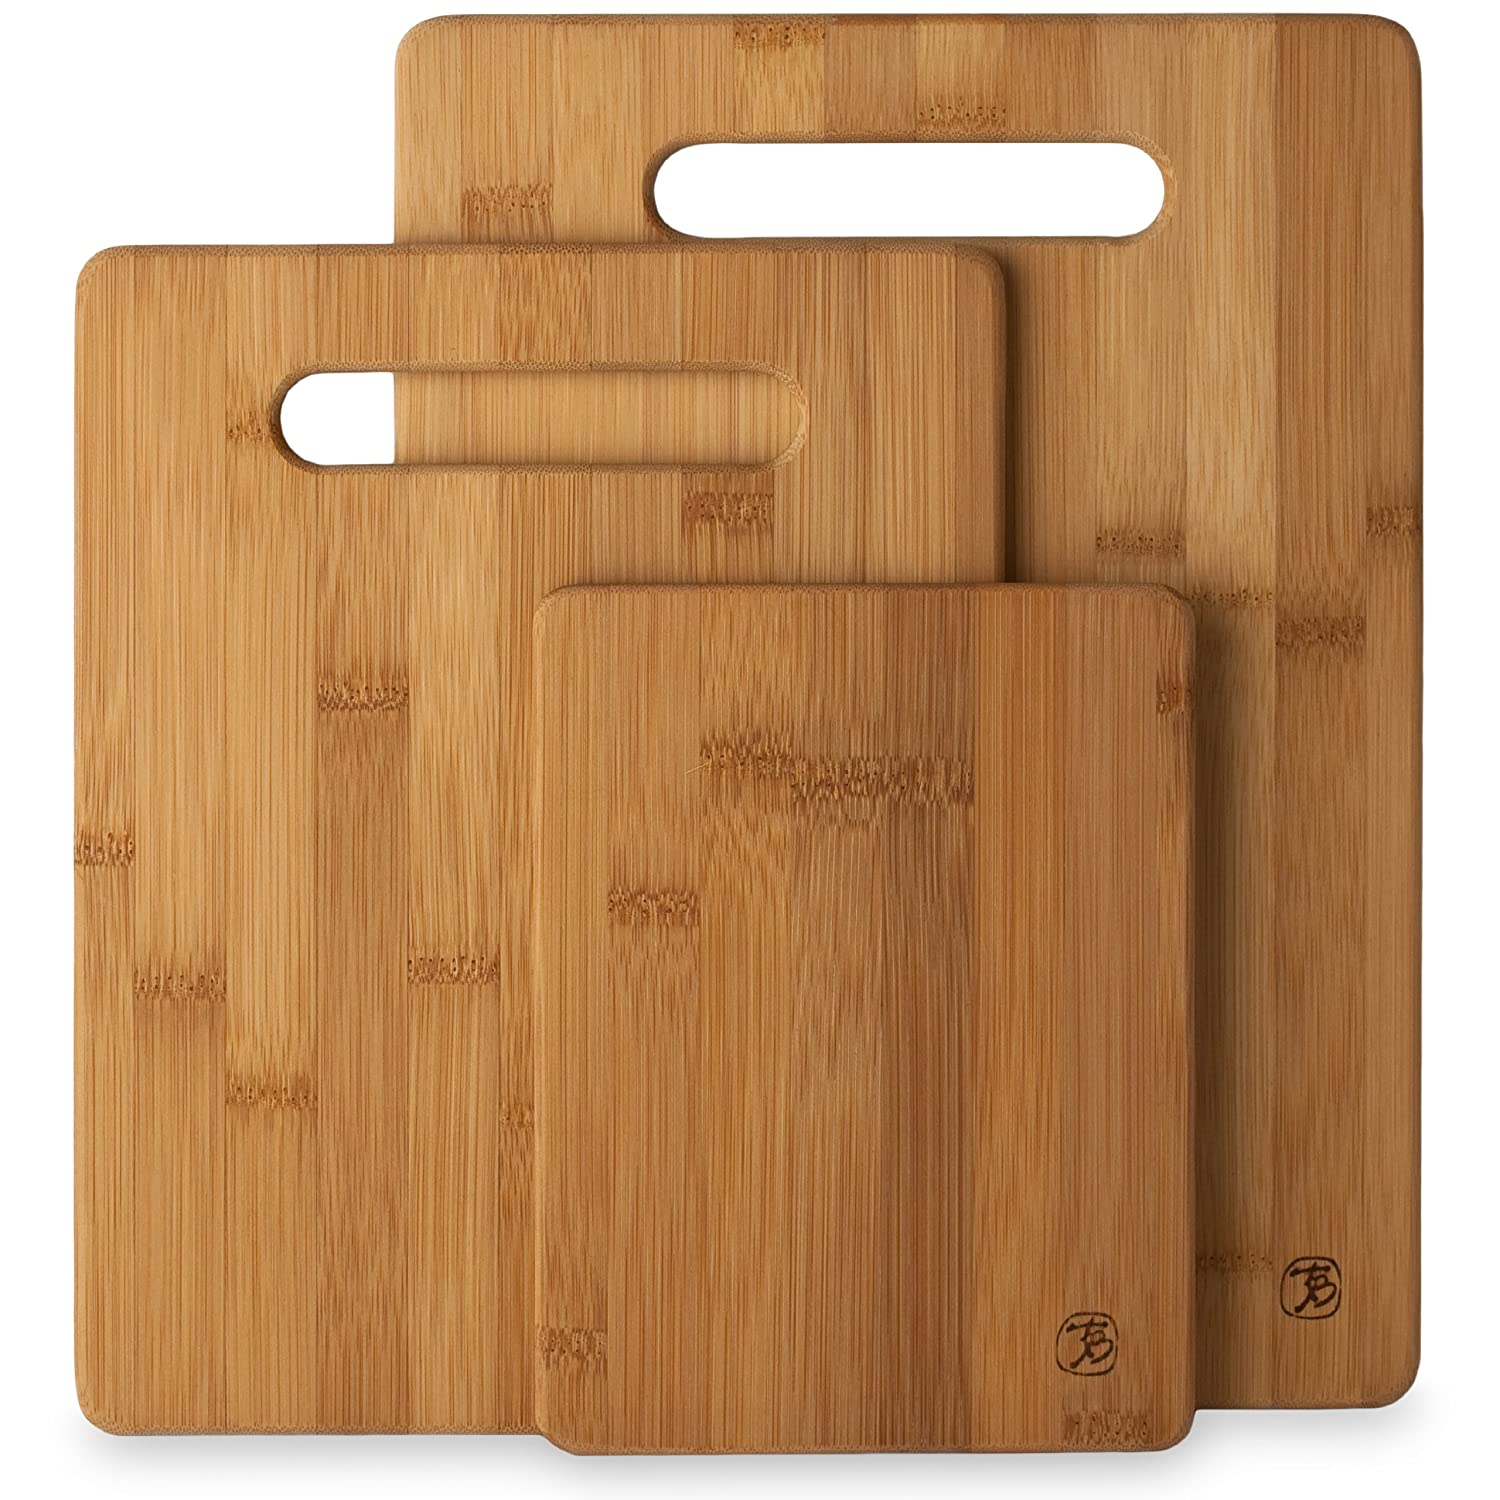 Totally Bamboo 20-7930 3-Piece Cutting Board Set $9.99